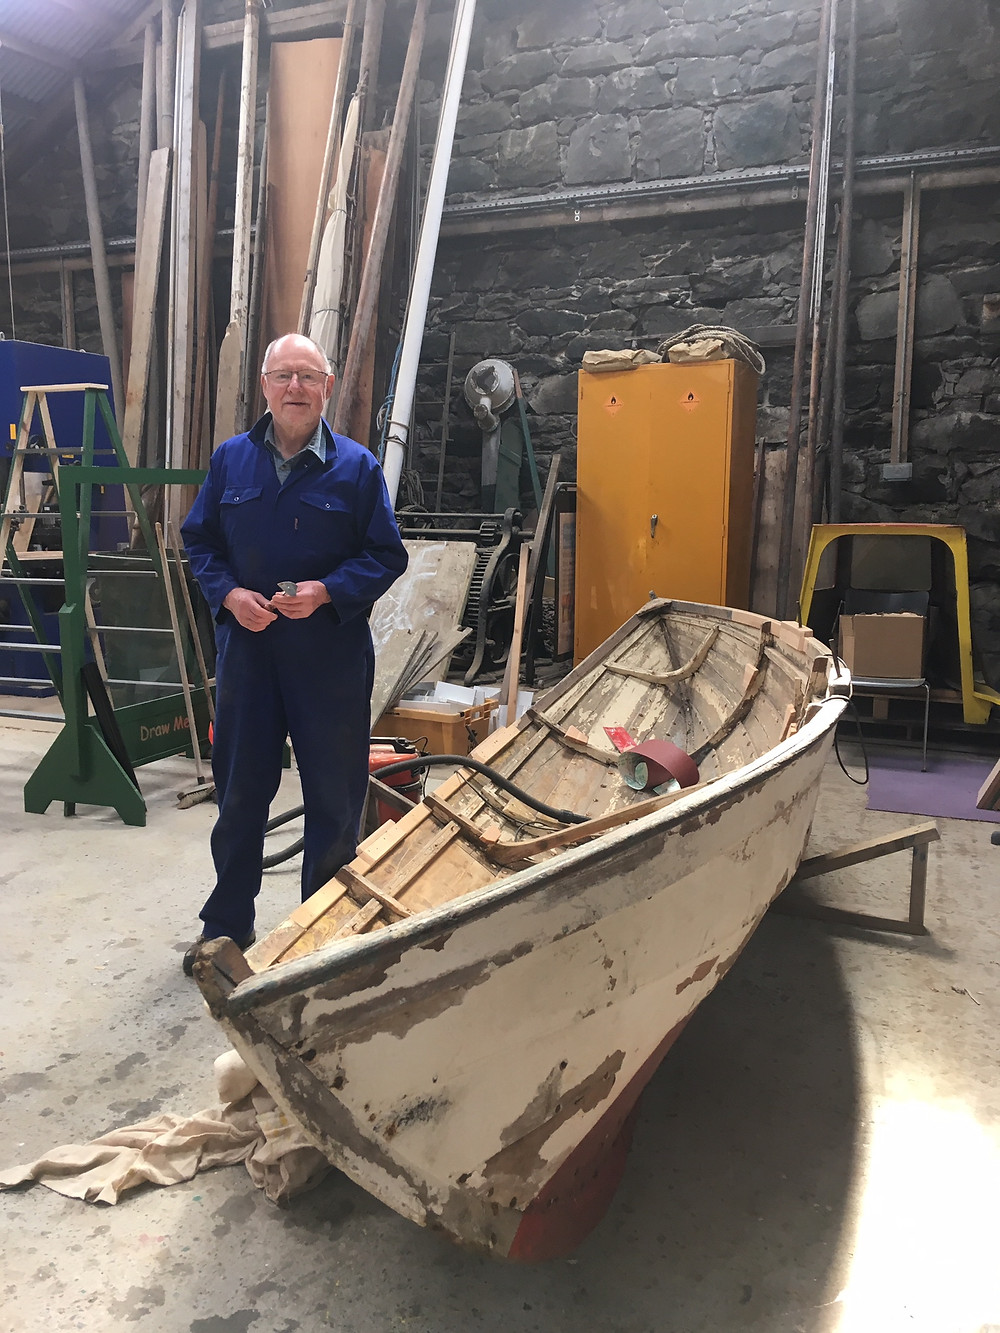 Martin Randall standing next to the hybrid færing in the Shetland Museum boat shed. Photograph taken by Moder Dy June 2019.